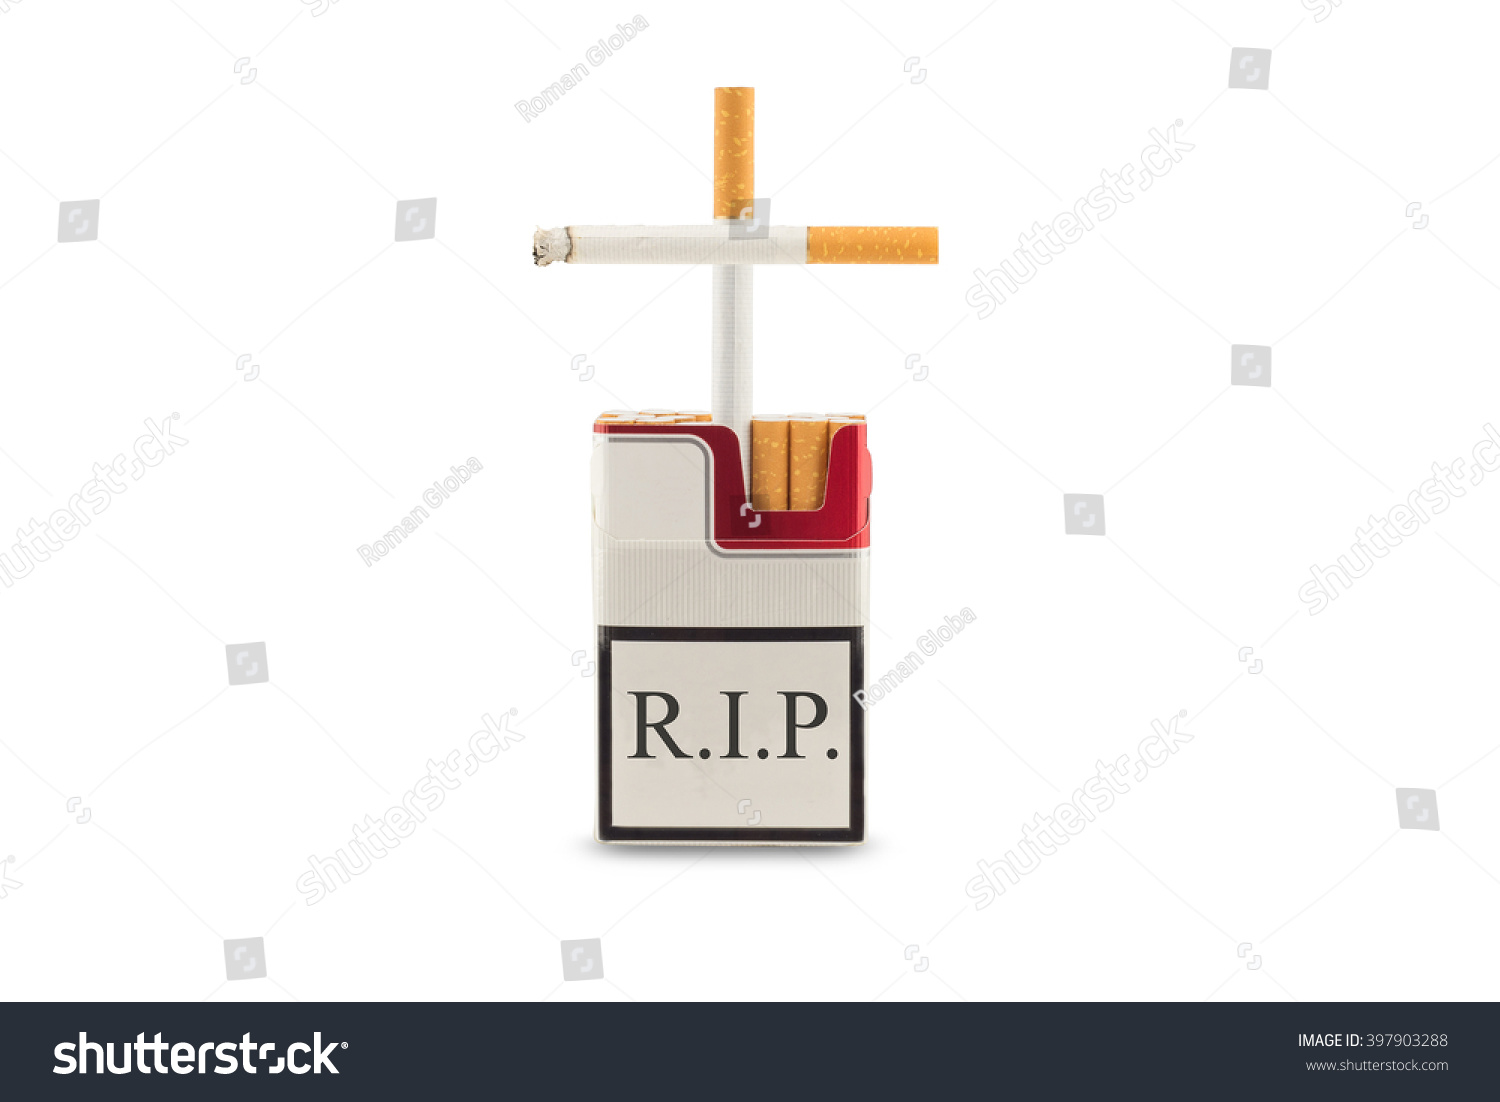 Cigarette coupon Lambert Butler